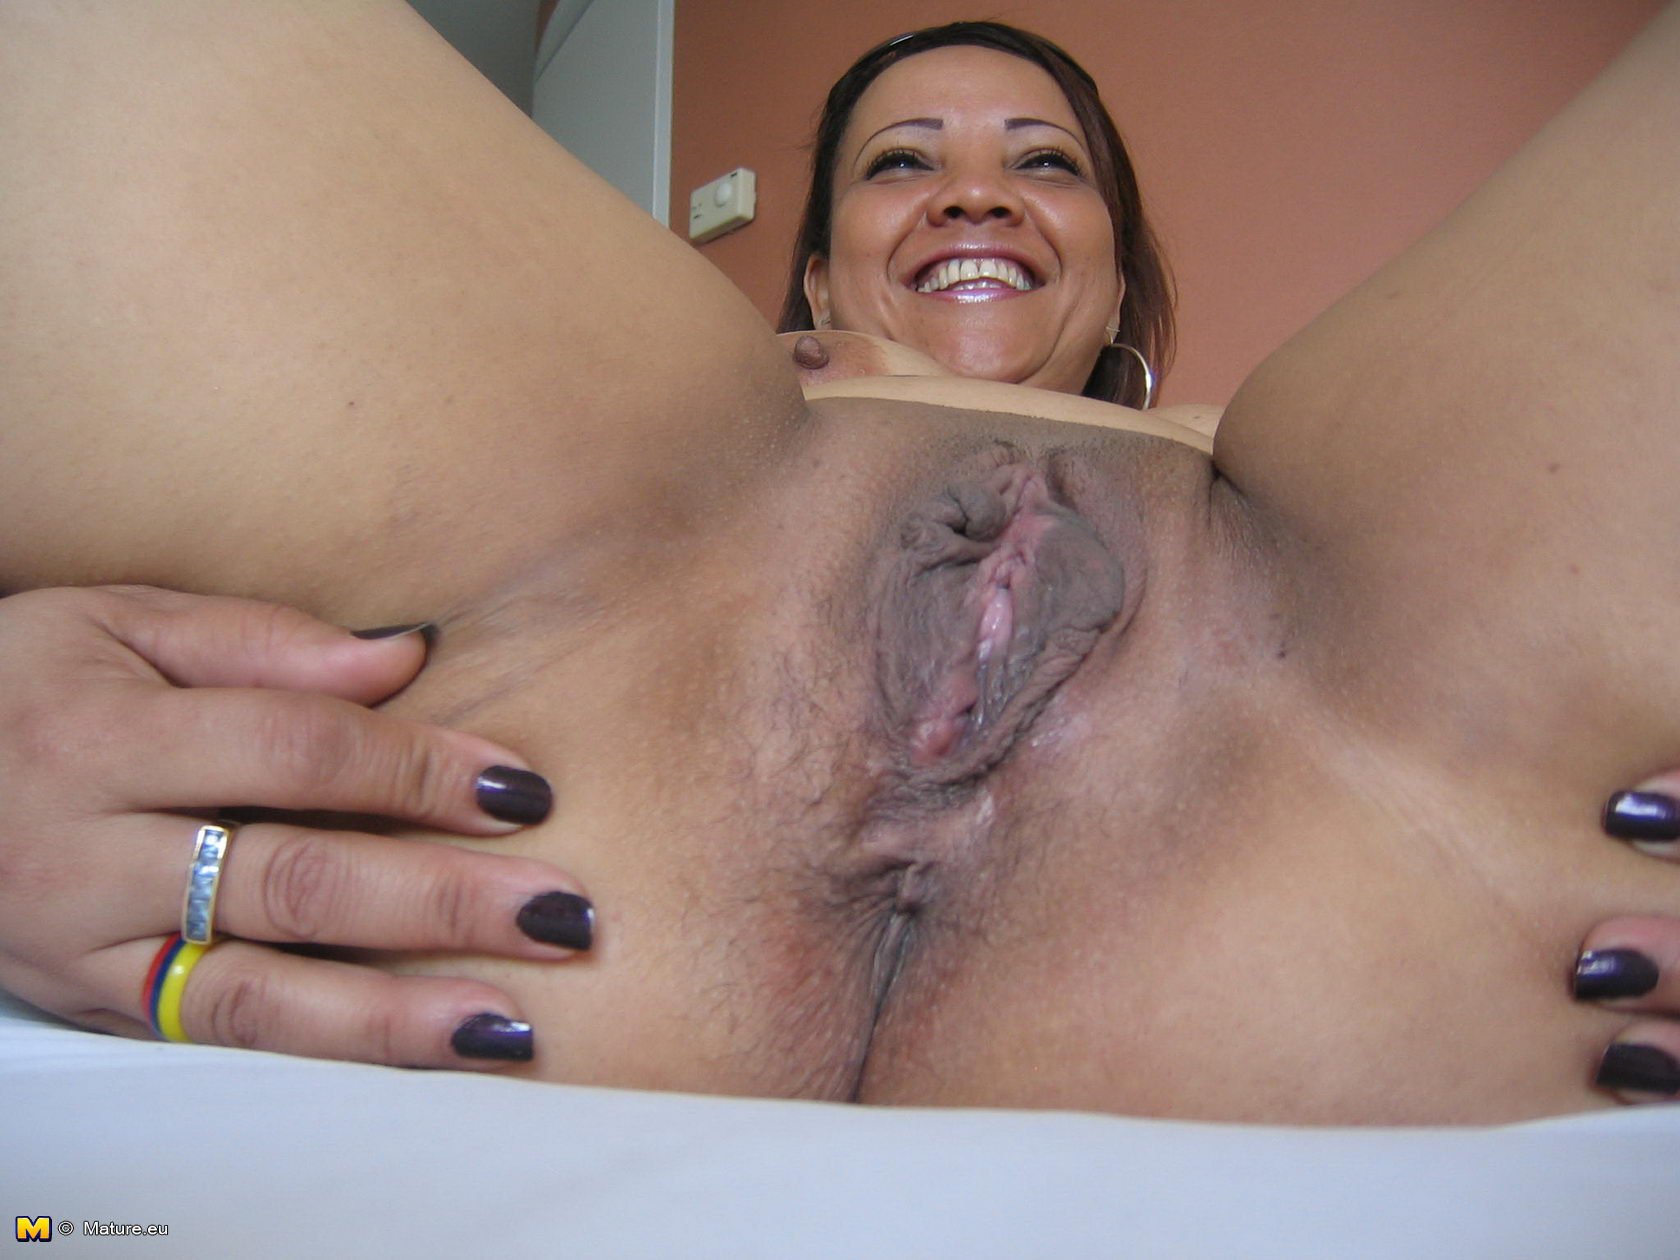 A horny latina with natural big tits sucks two huge cock on the fireplace 8